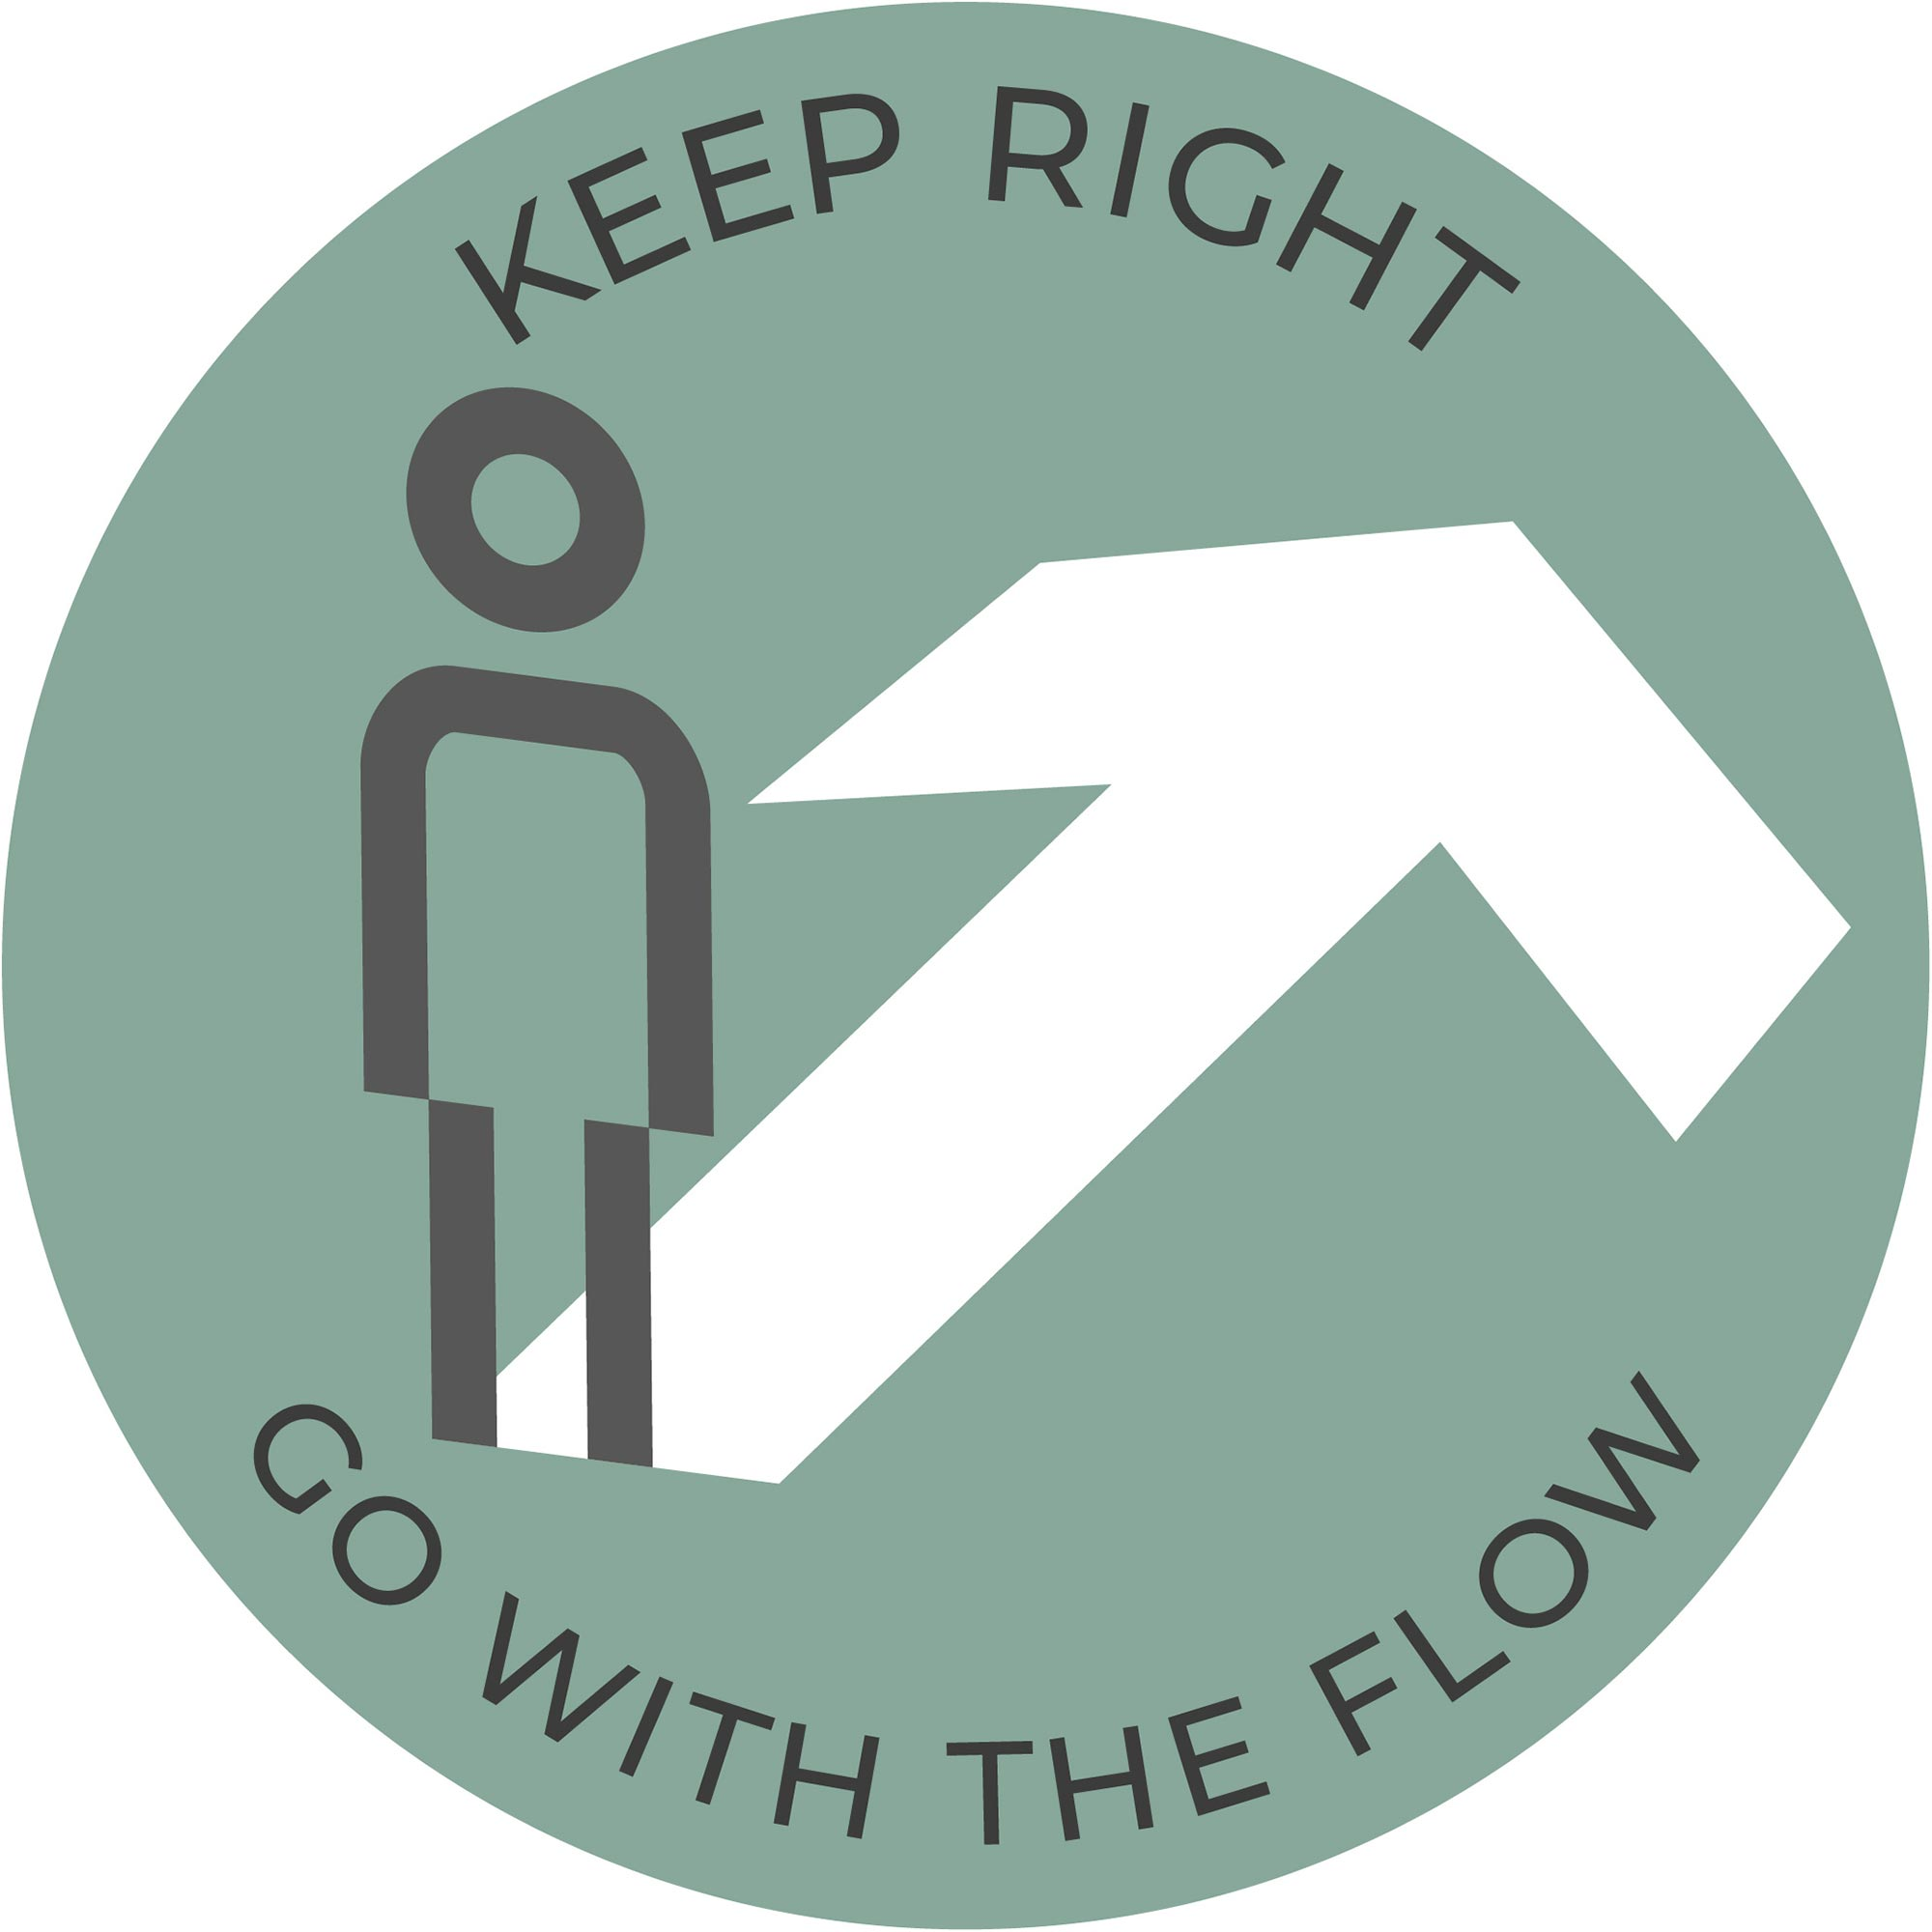 Go with the flow - Right